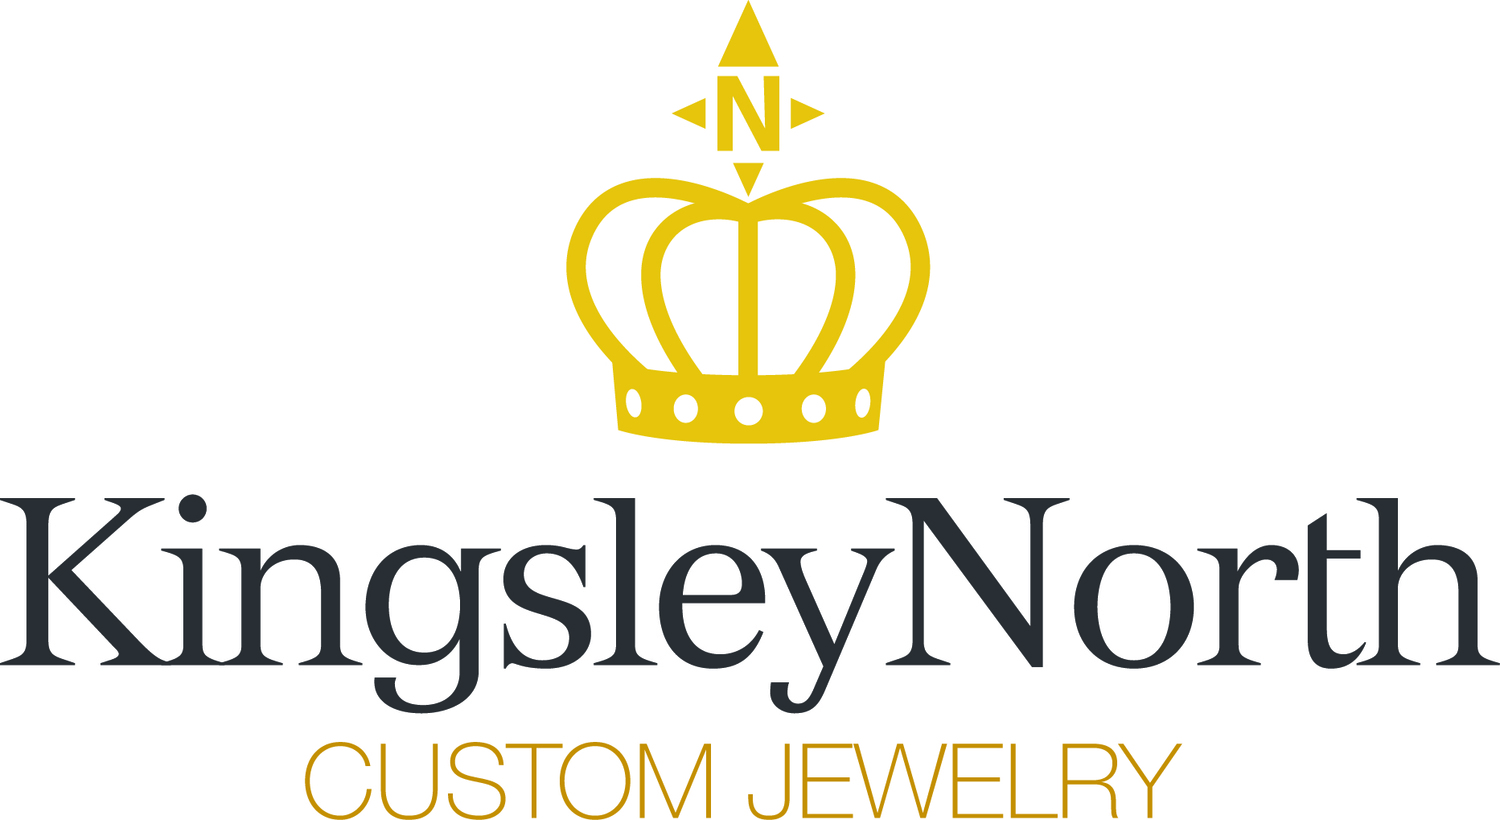 Kingsley North Custom Jewelry